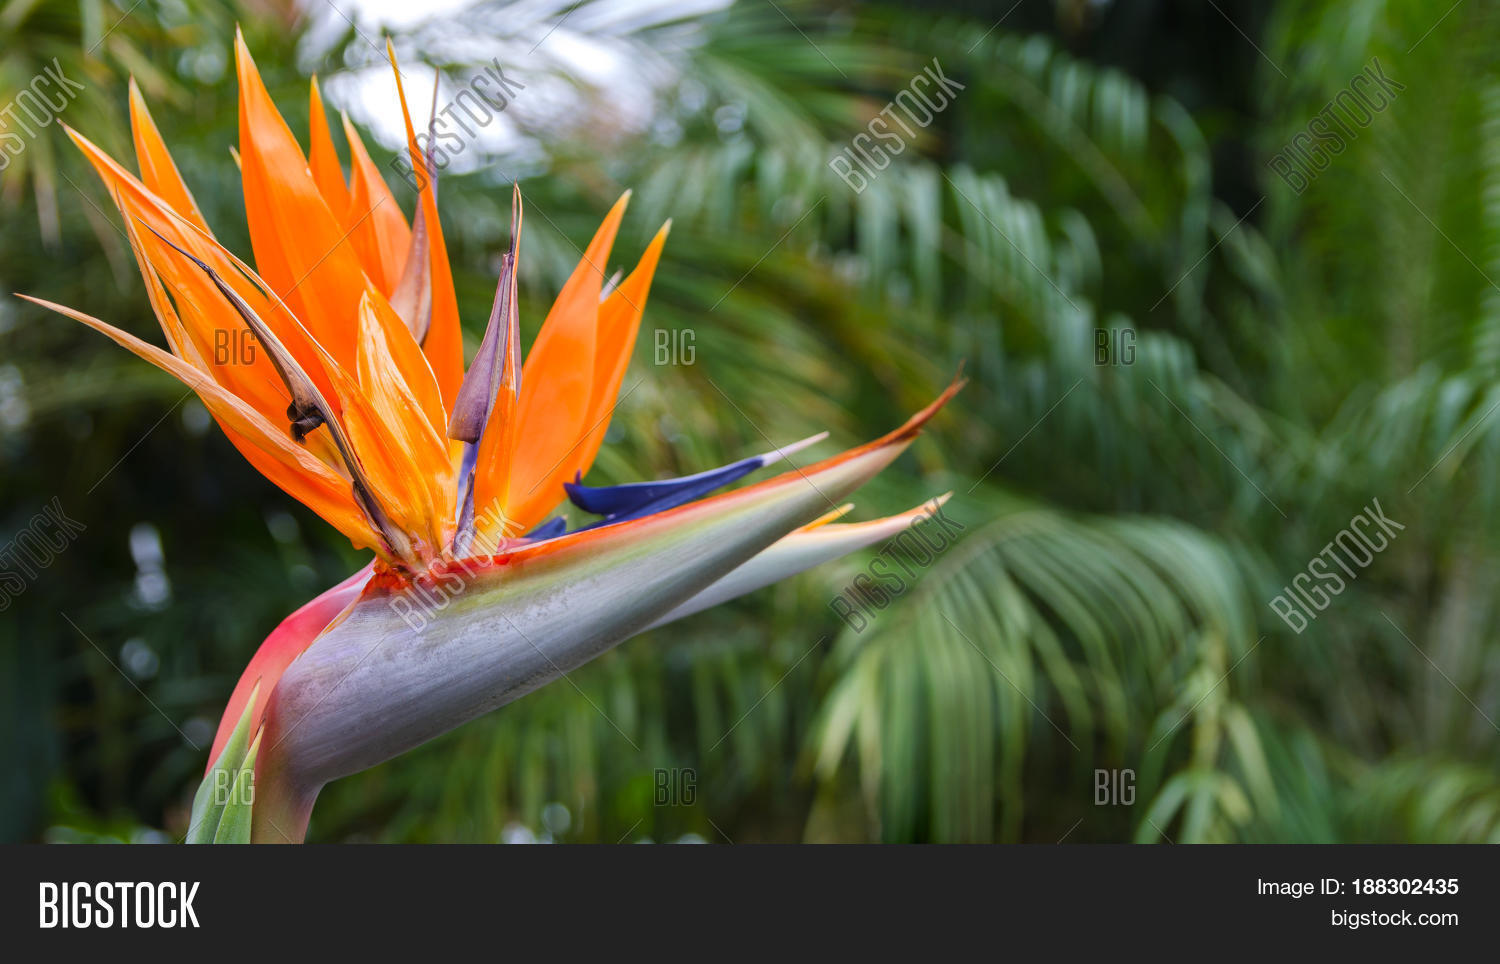 Exotic Tropical Flower Image Photo Free Trial Bigstock